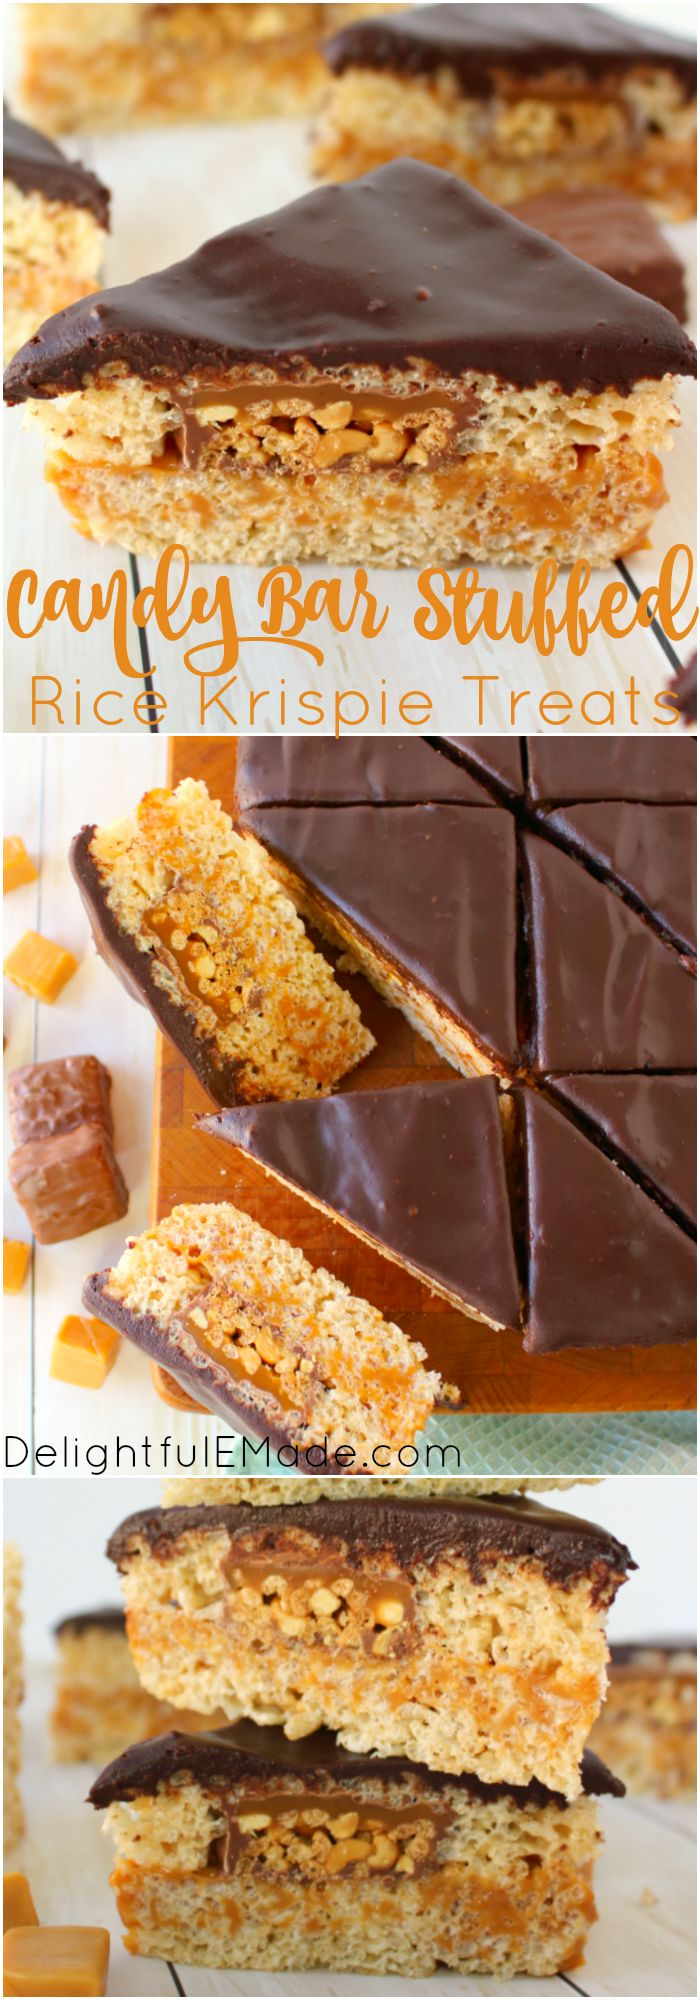 Cereal treats brought to a whole new glorious level! These Candy Bar Stuffed Rice Krispie Treats are loaded with SNICKERS® Crisper bars, gooey caramel, all between layers of marshmallow cereal treats and topped with a thick layer of chocolate! These bars are the ultimate game time treat!